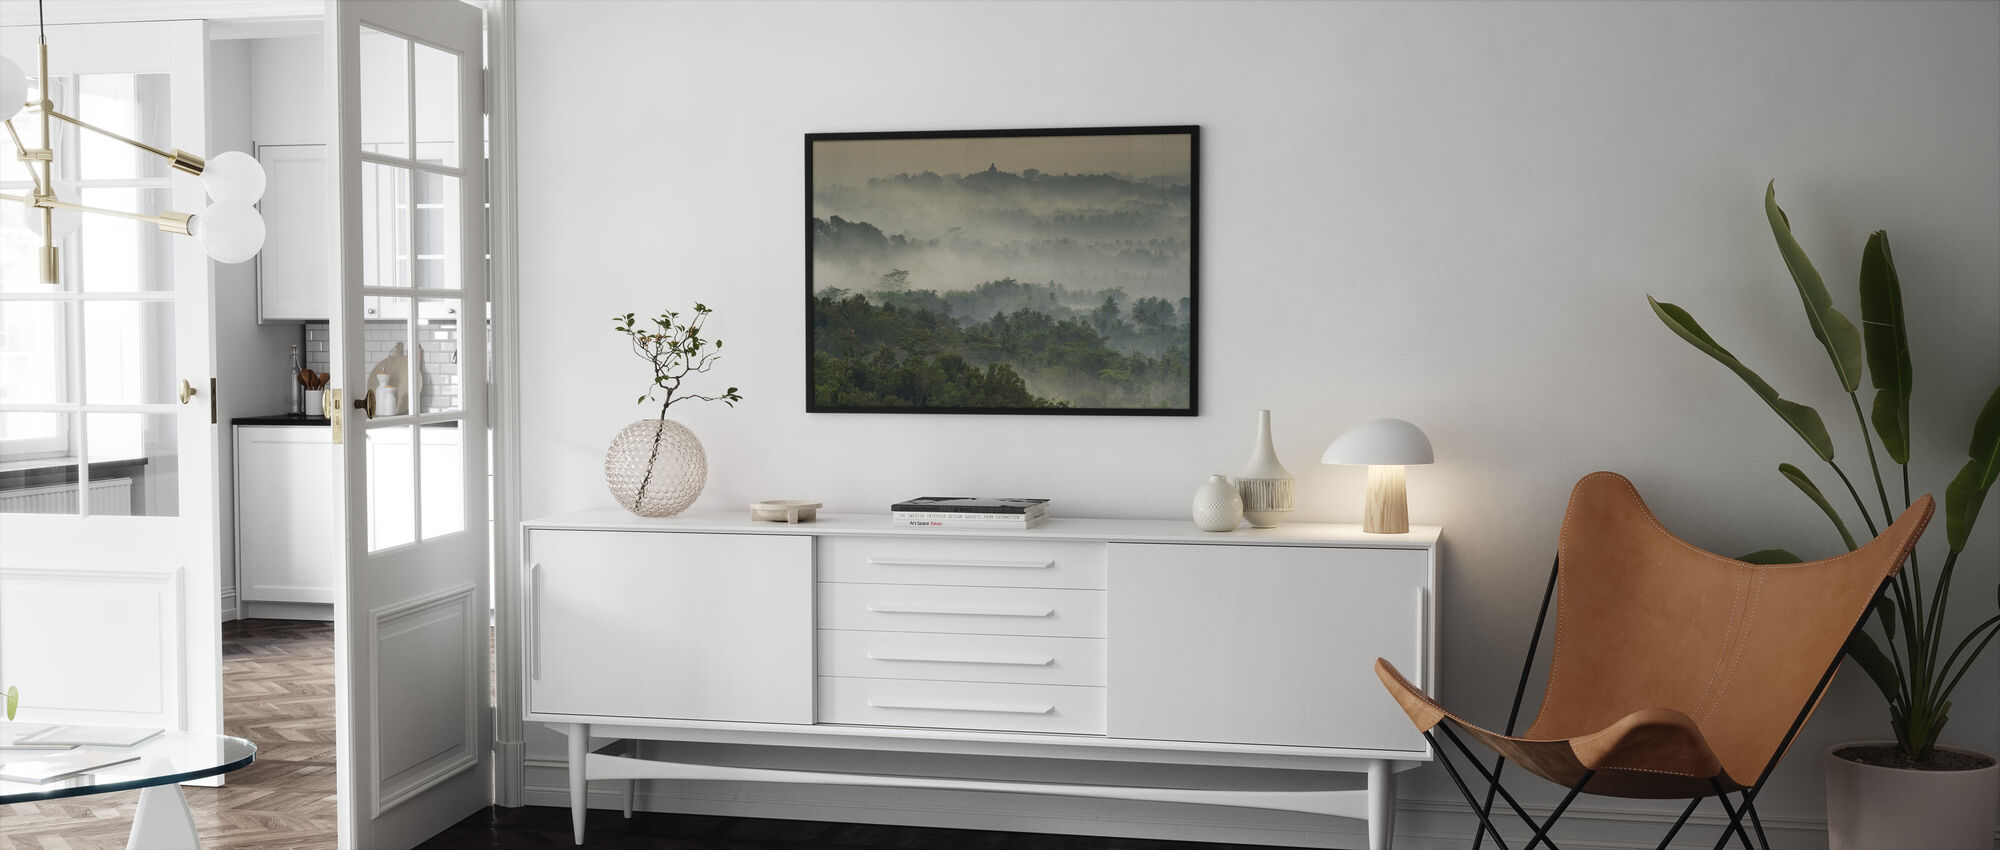 Temple in the Mist - Framed print - Living Room